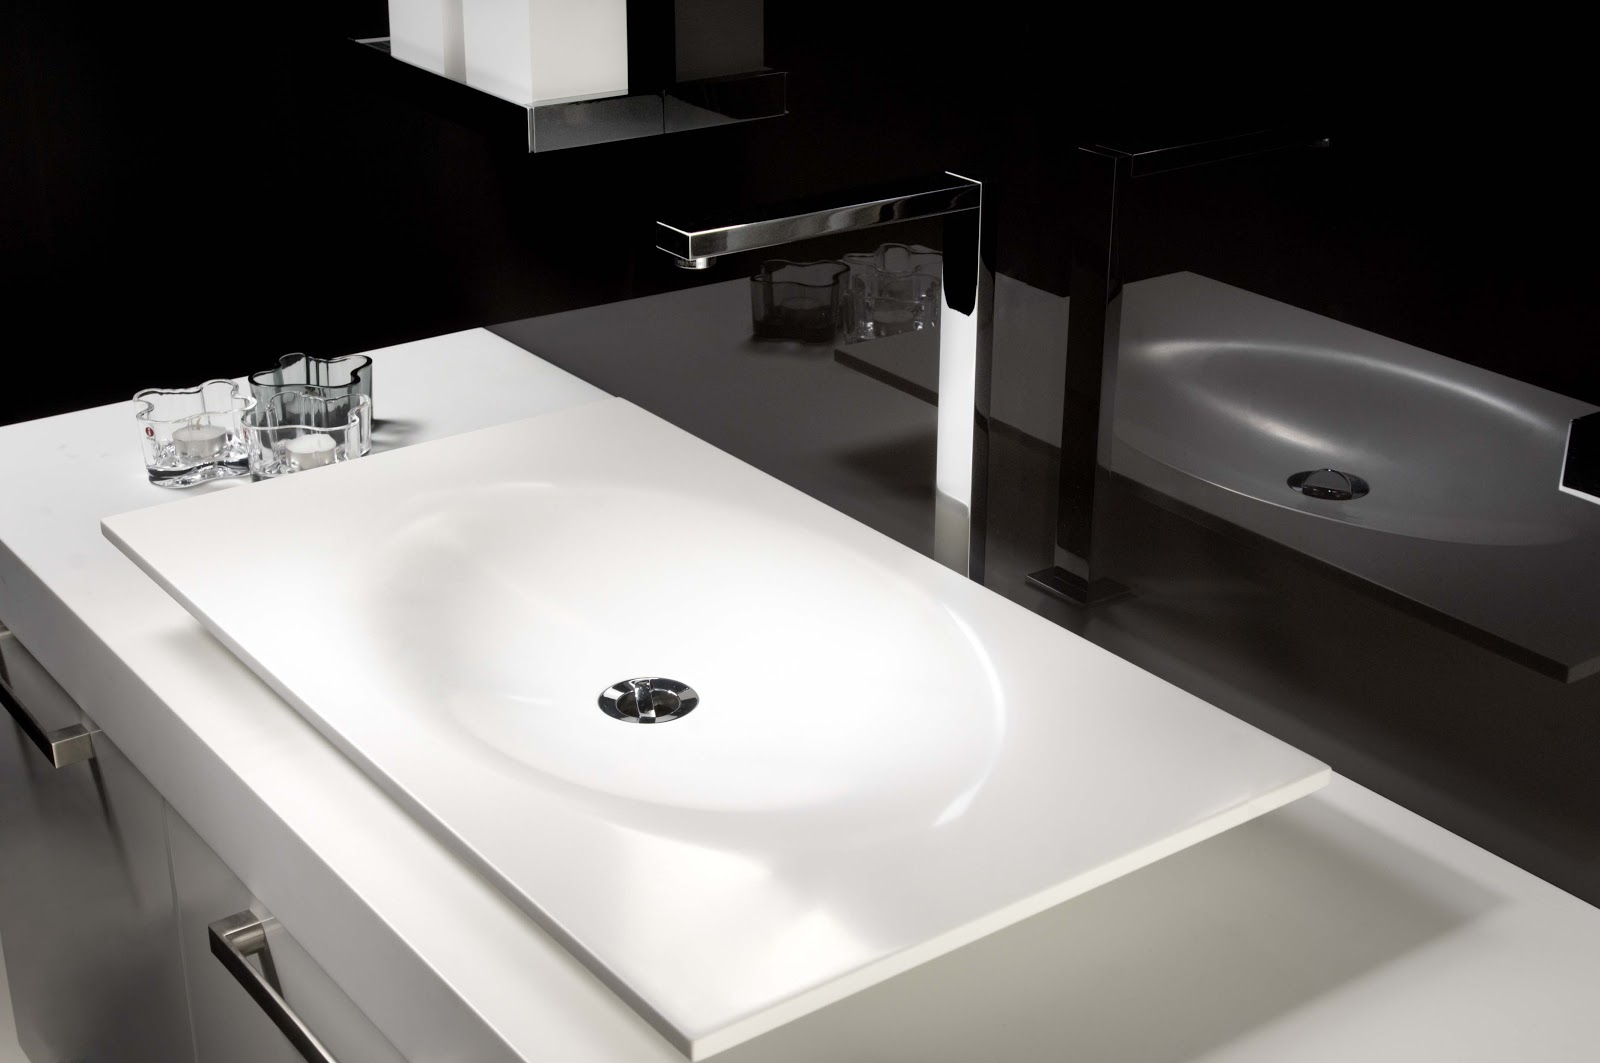 Scoop Bathroom Basin By Minosa Made With Corian   The Modern Bathroom Sink